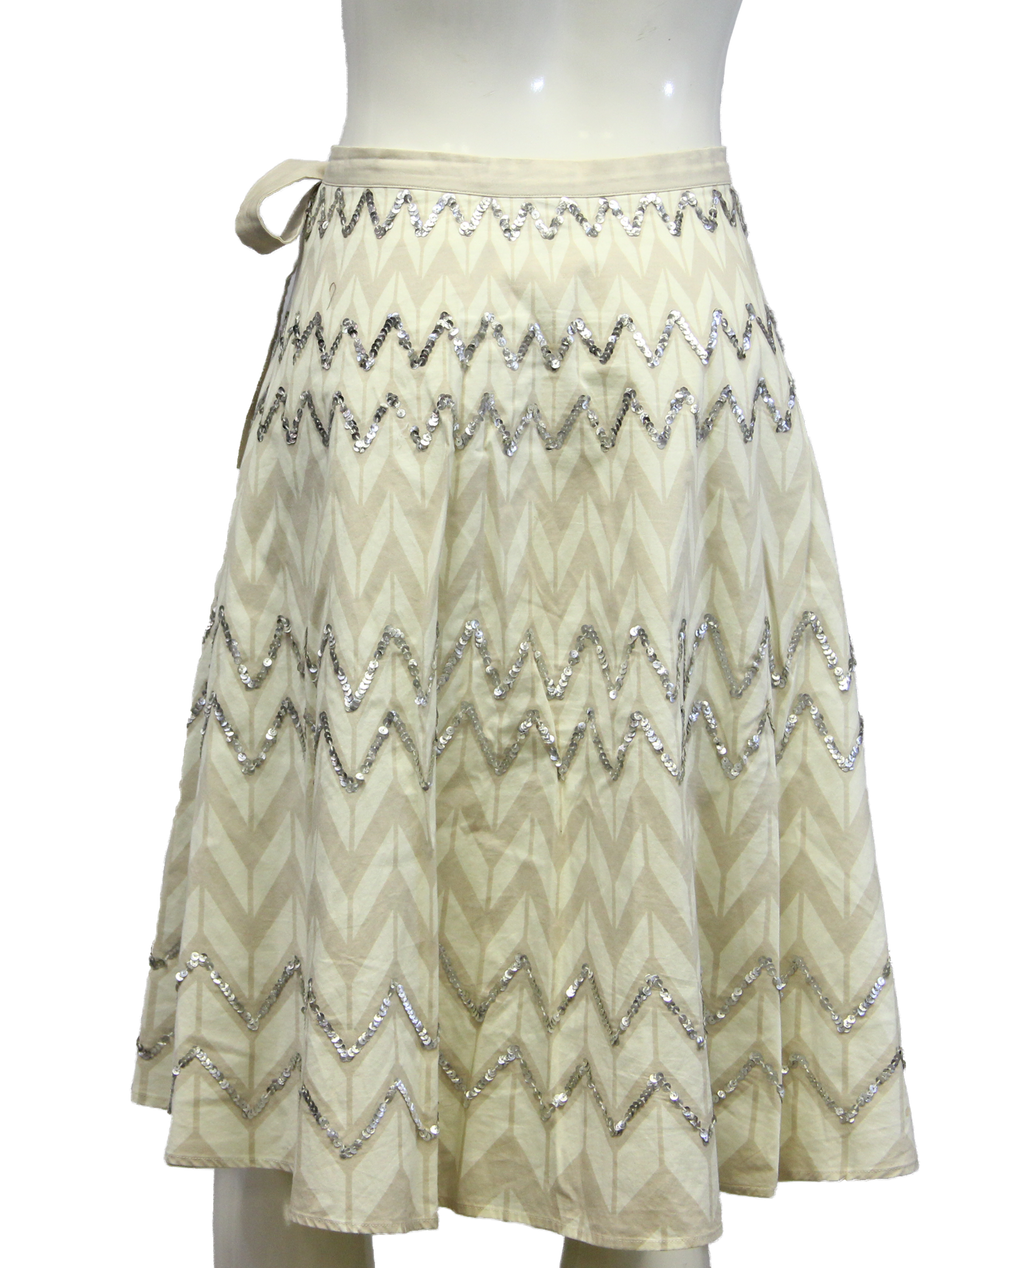 BCBG Max Azria Sequin Skirt Size L (SKU 000026) - Designers On A Dime - 1